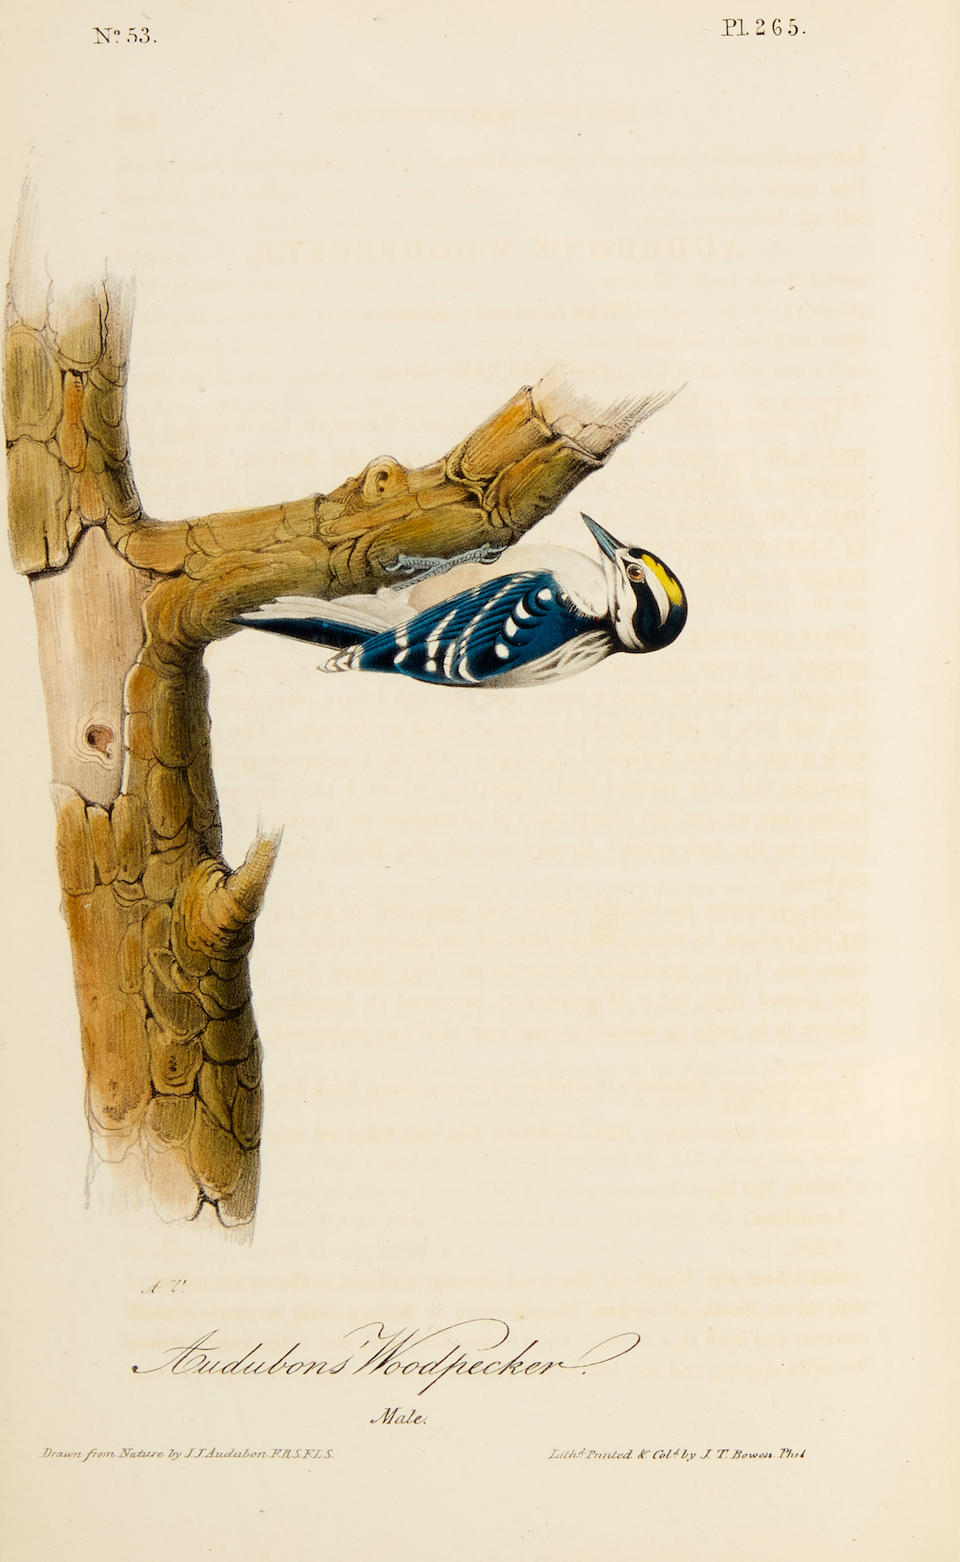 AUDUBON, JOHN JAMES. 1785-1851. The Birds of America, from Drawings Made in the United States and Their Territories.  New York & Philadelphia: J.J. Audubon & J.B. Chevalier, 1840-1844.